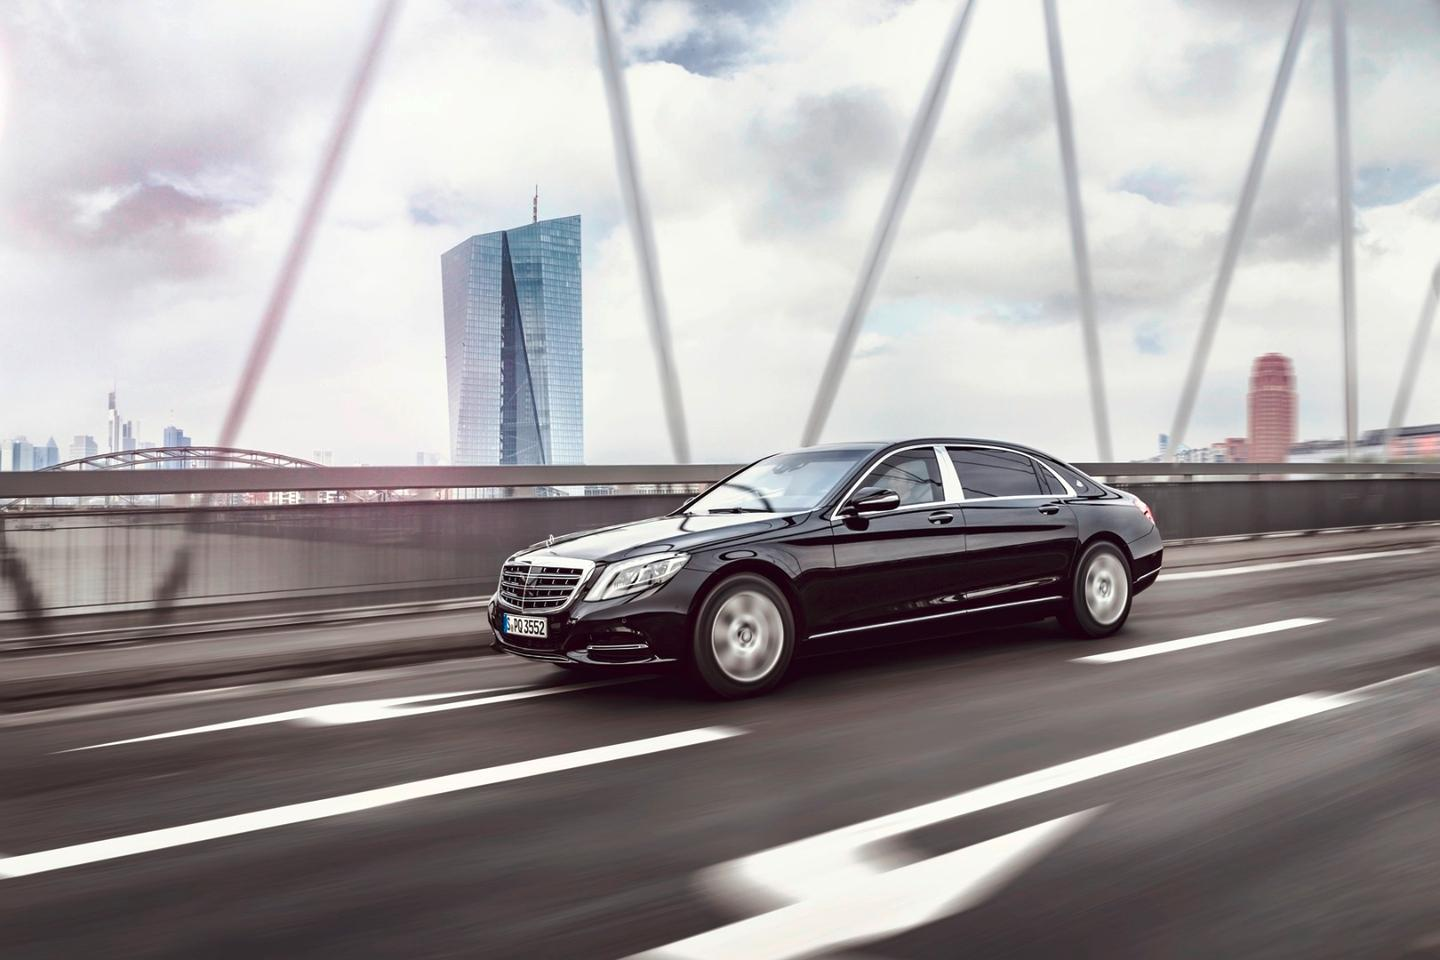 The S 600 Guard has a VR10 protection rating awarded by the Ballistics Authority